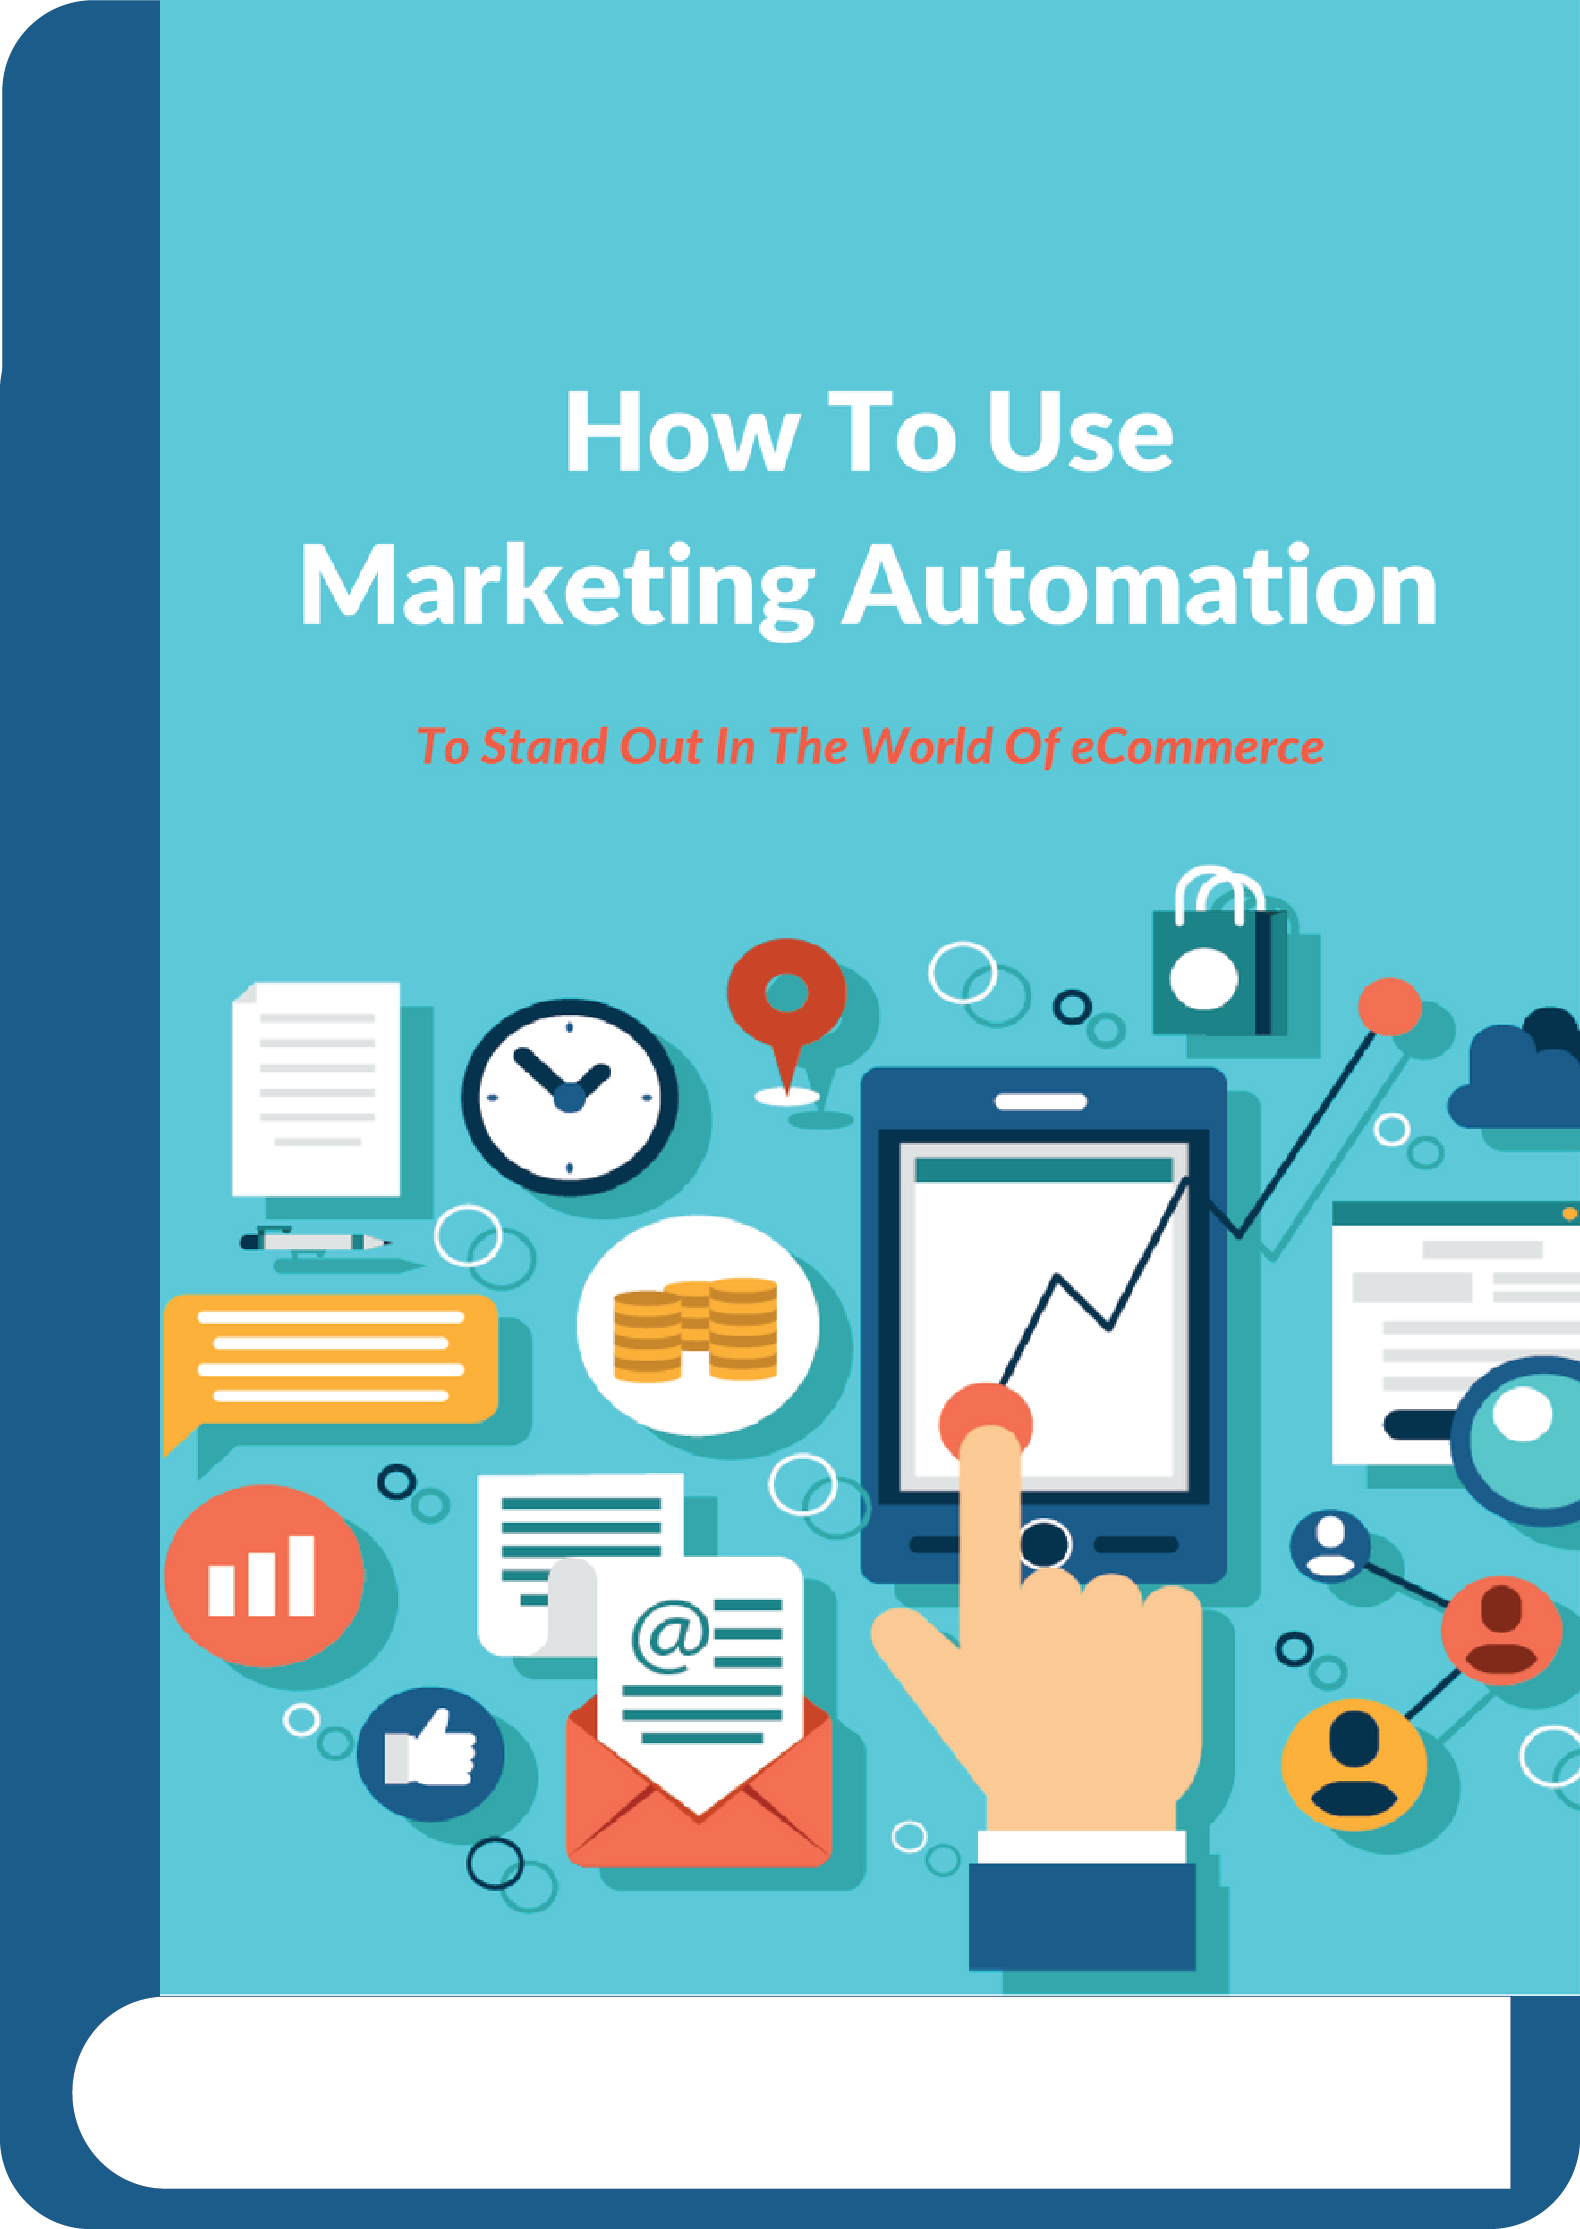 eCommerce businesses both small and large are now making use of marketing automation tools. Discover how you could use marketing automation to boost sales!